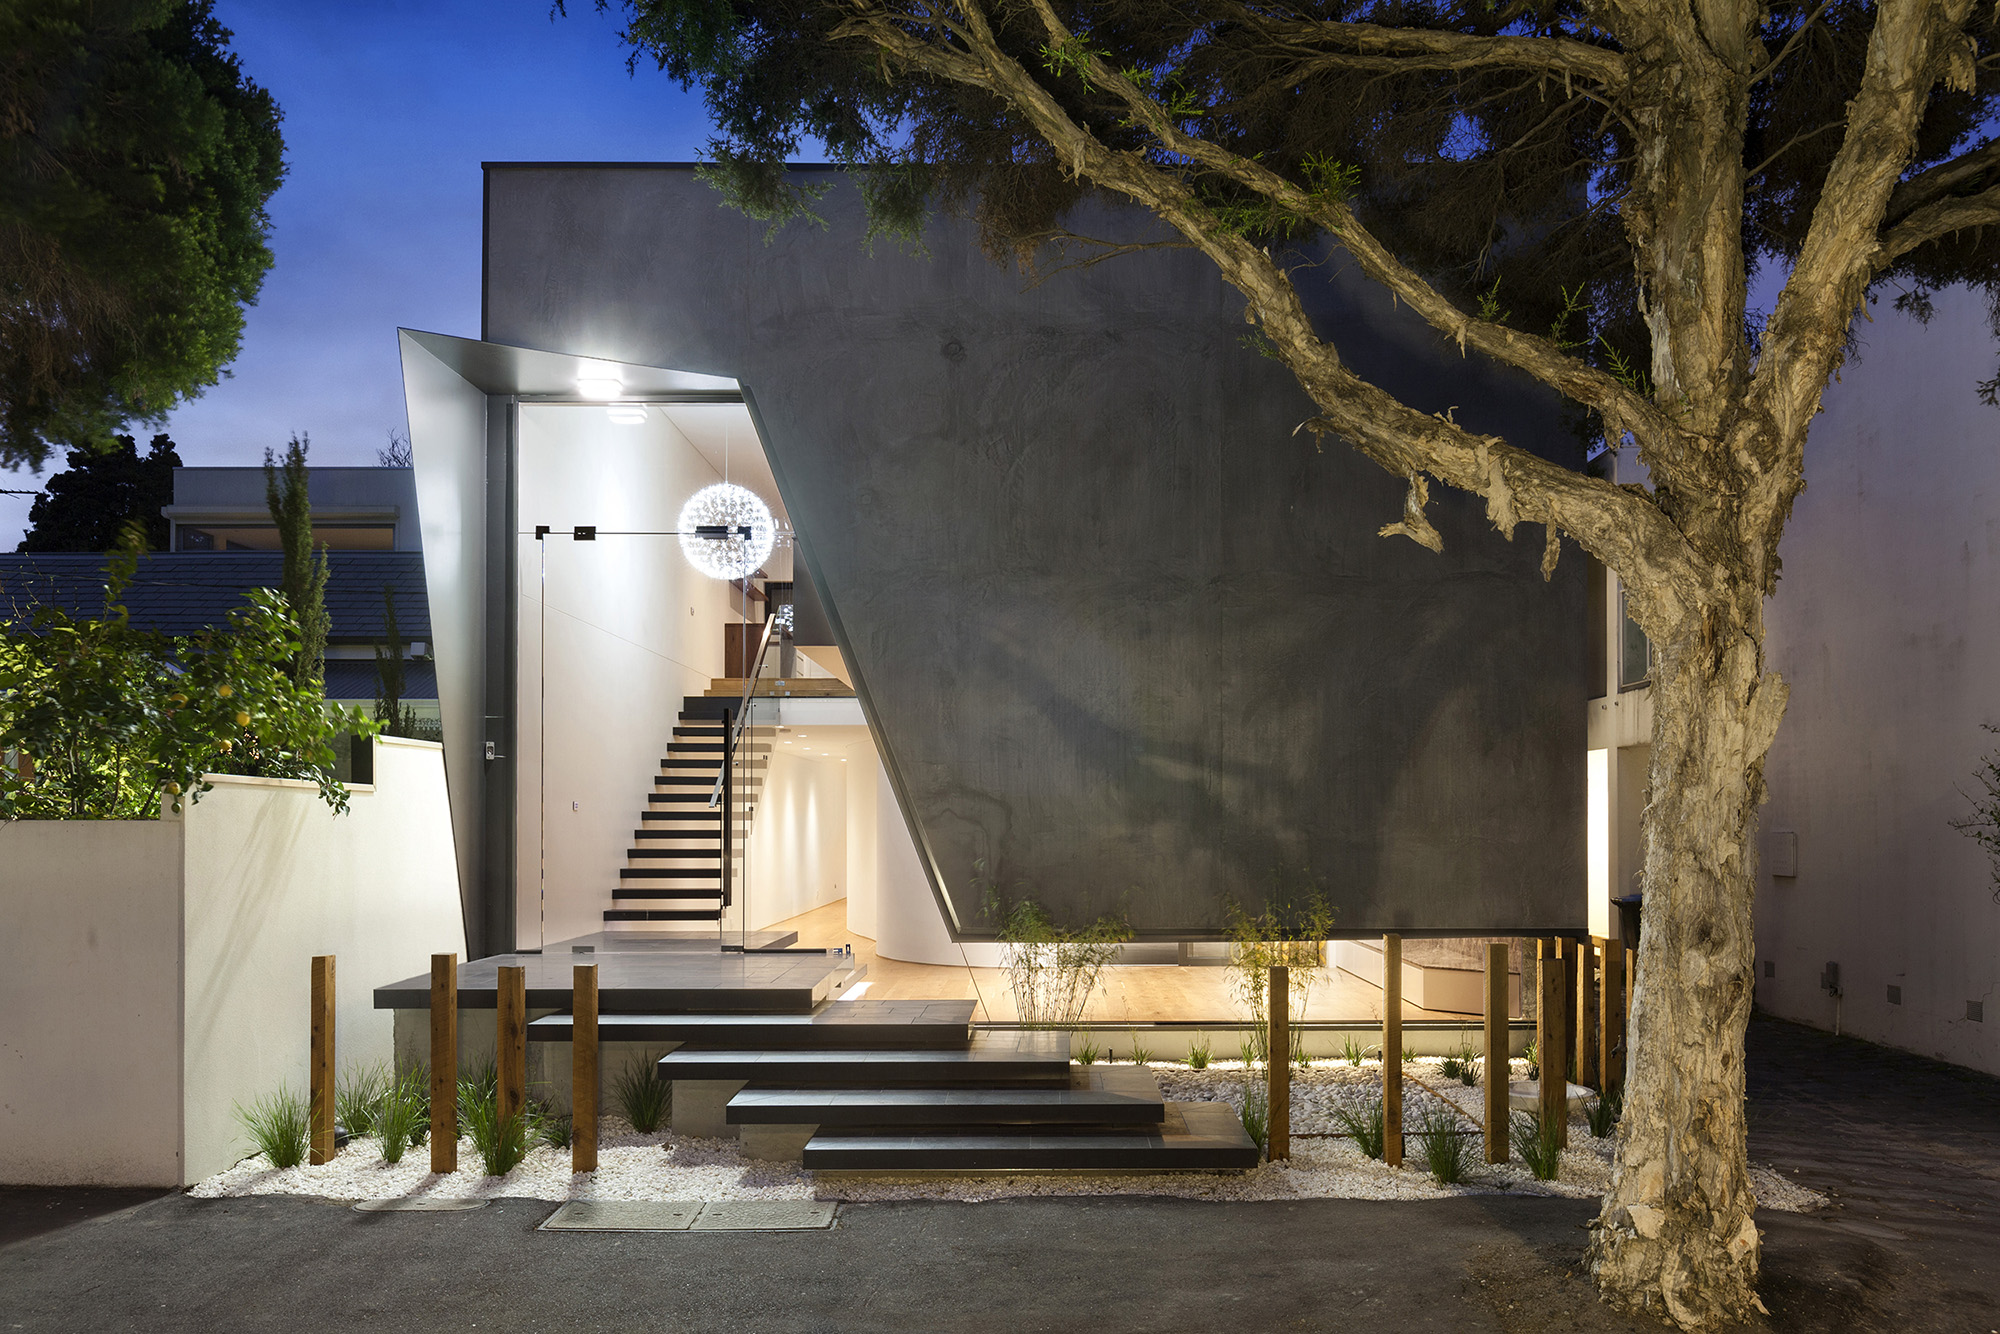 house entrance with stepped staircase and a tree in front